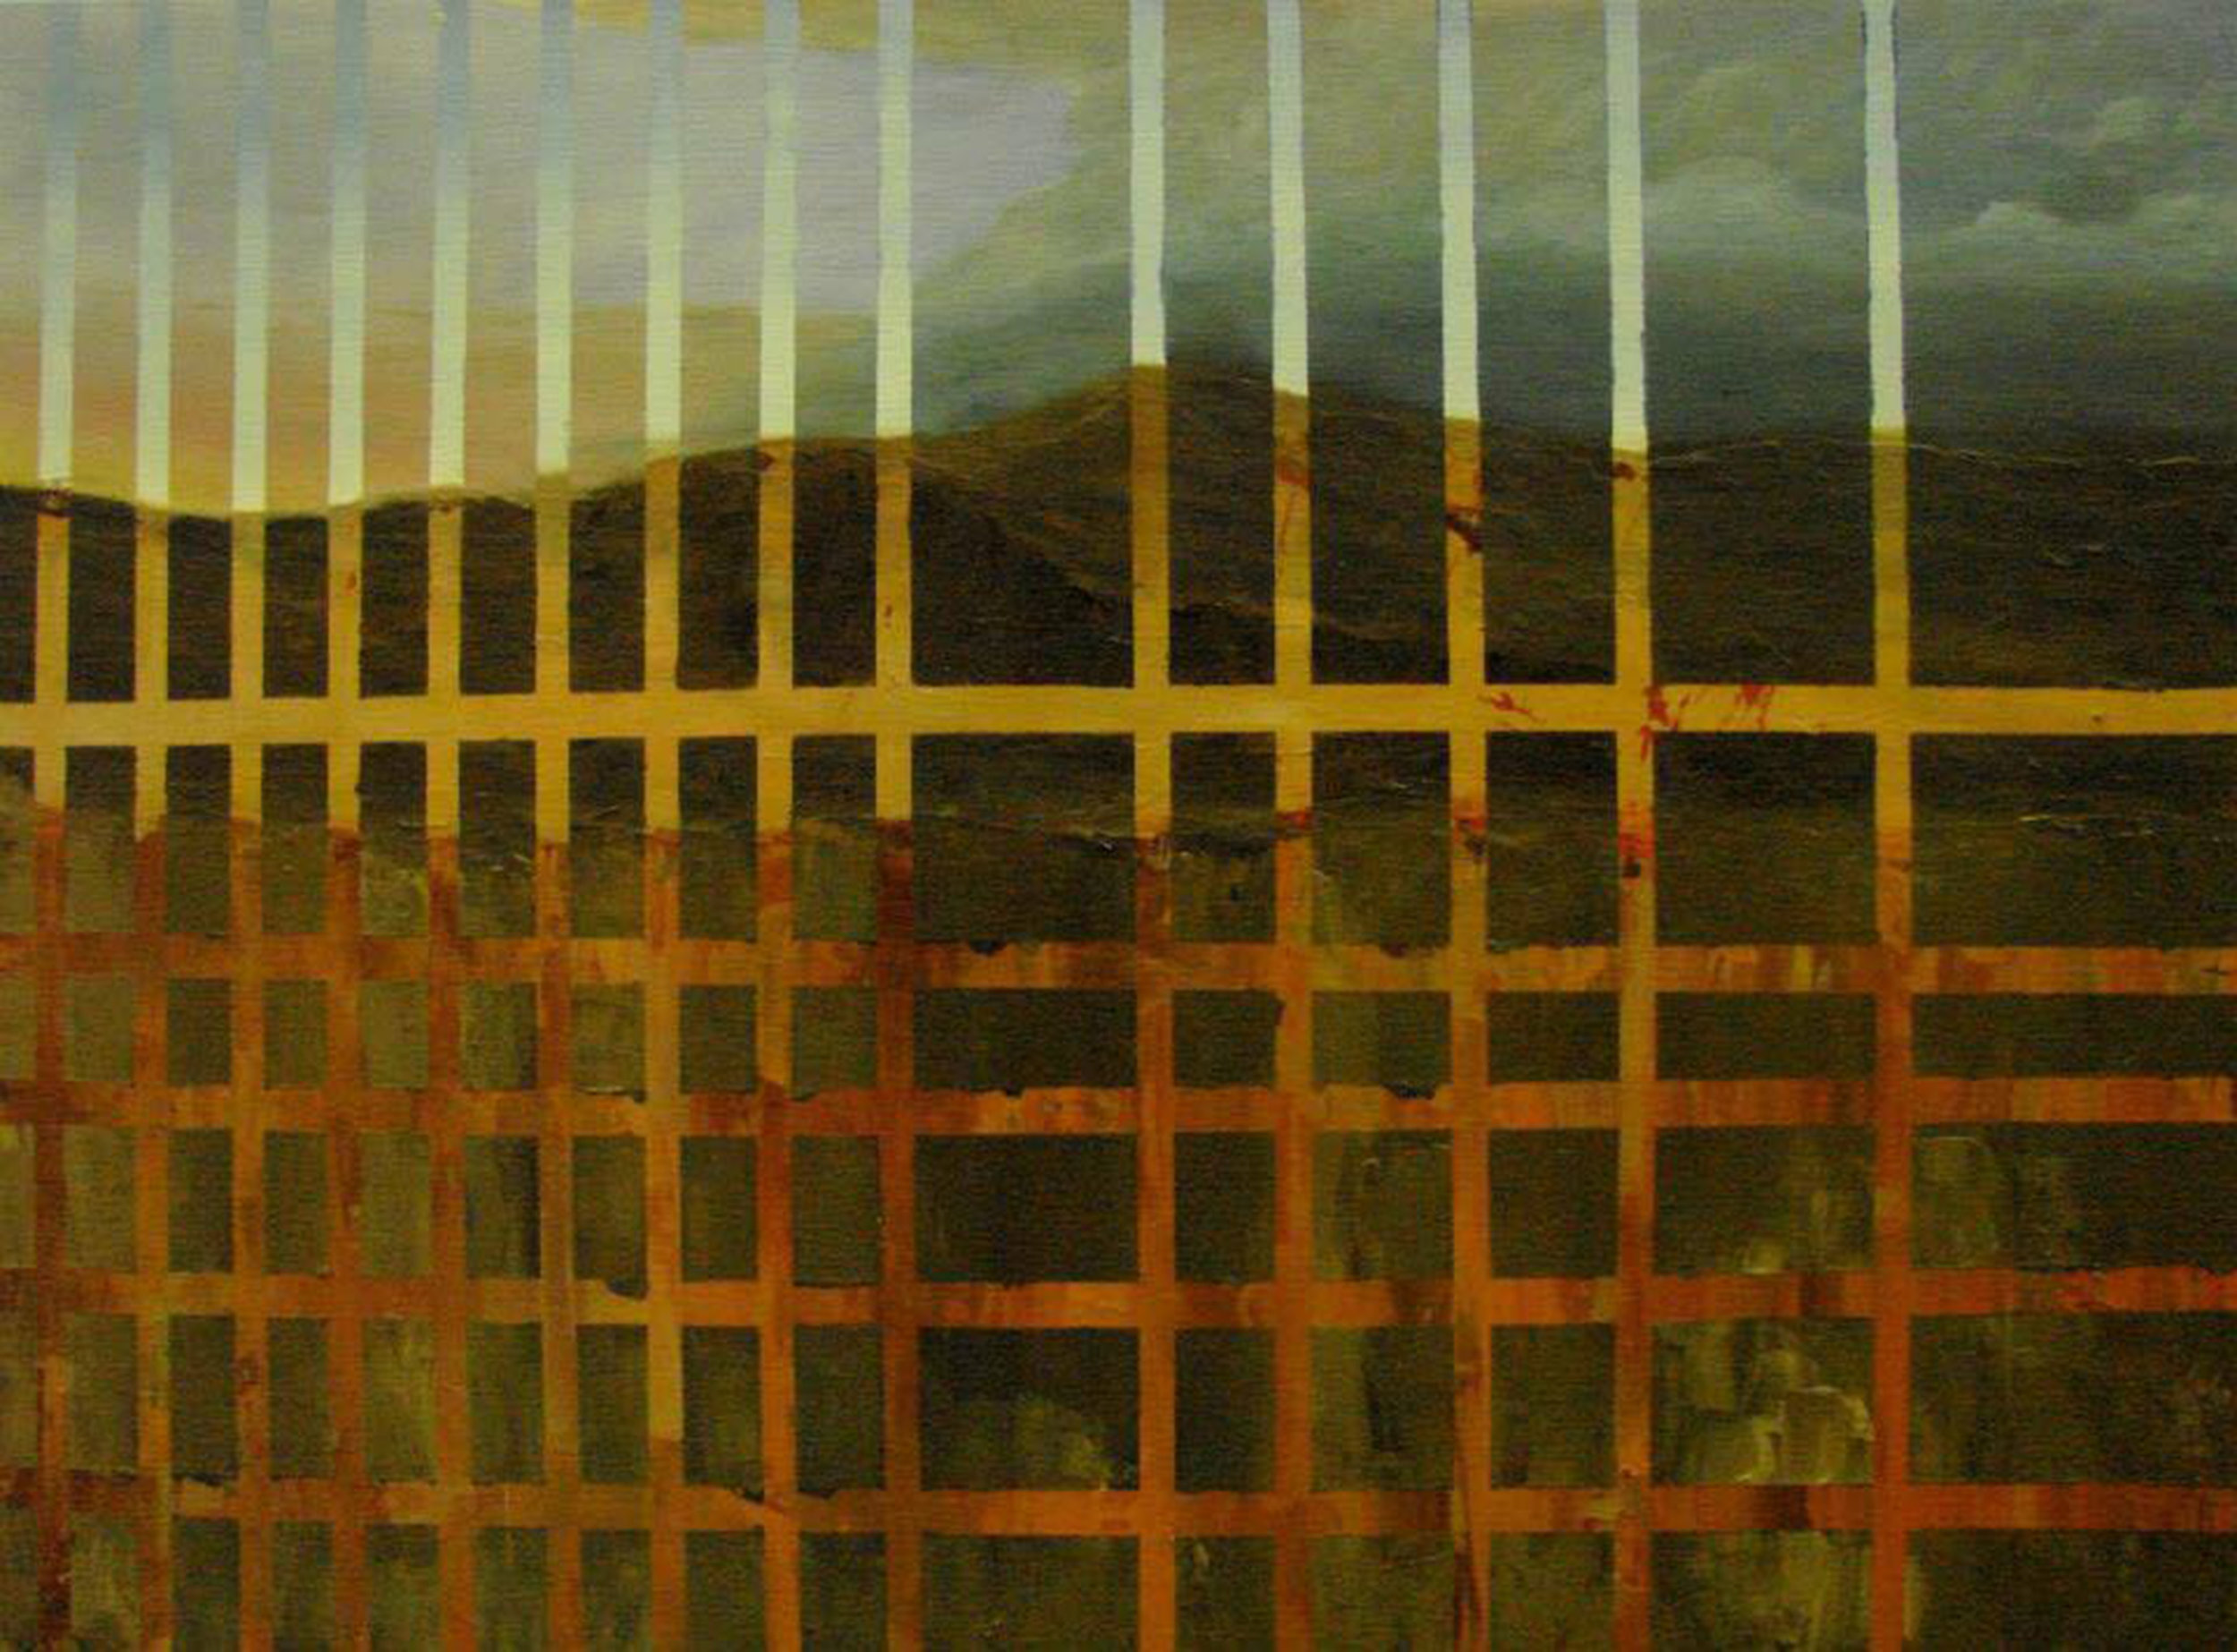 """Untitled.""  A landscape overlaid with a grid pattern. The landscape is a barren, mountainous scene with a sky that fades from yellow on the left to turbulent greens and blues on the right. If you look closely at the grid lines, they depict the same scene in the light of mid-day."